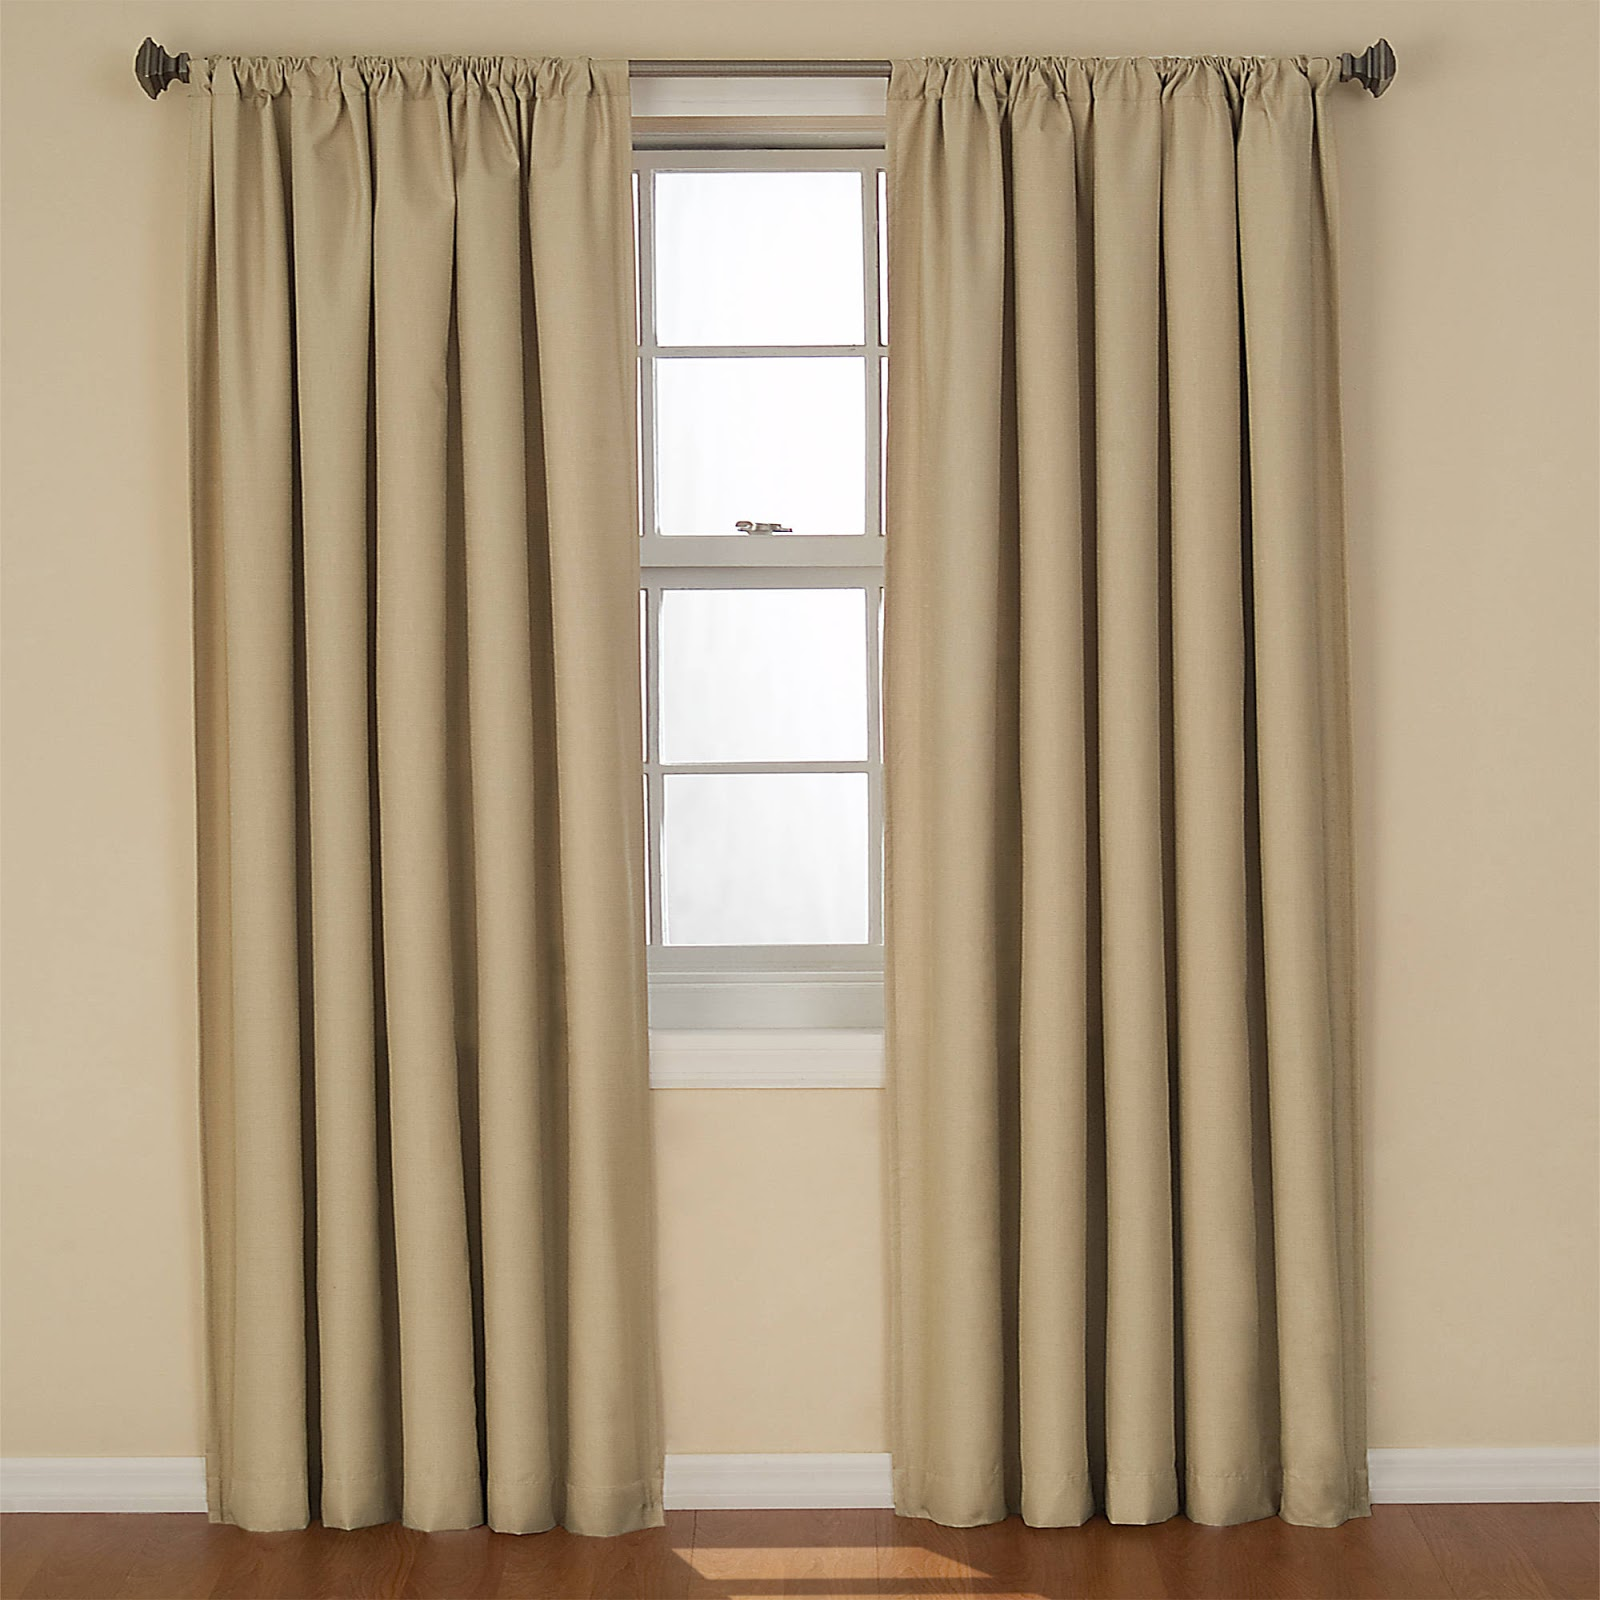 Curtains Bathroom Window Ideas Bay Windows